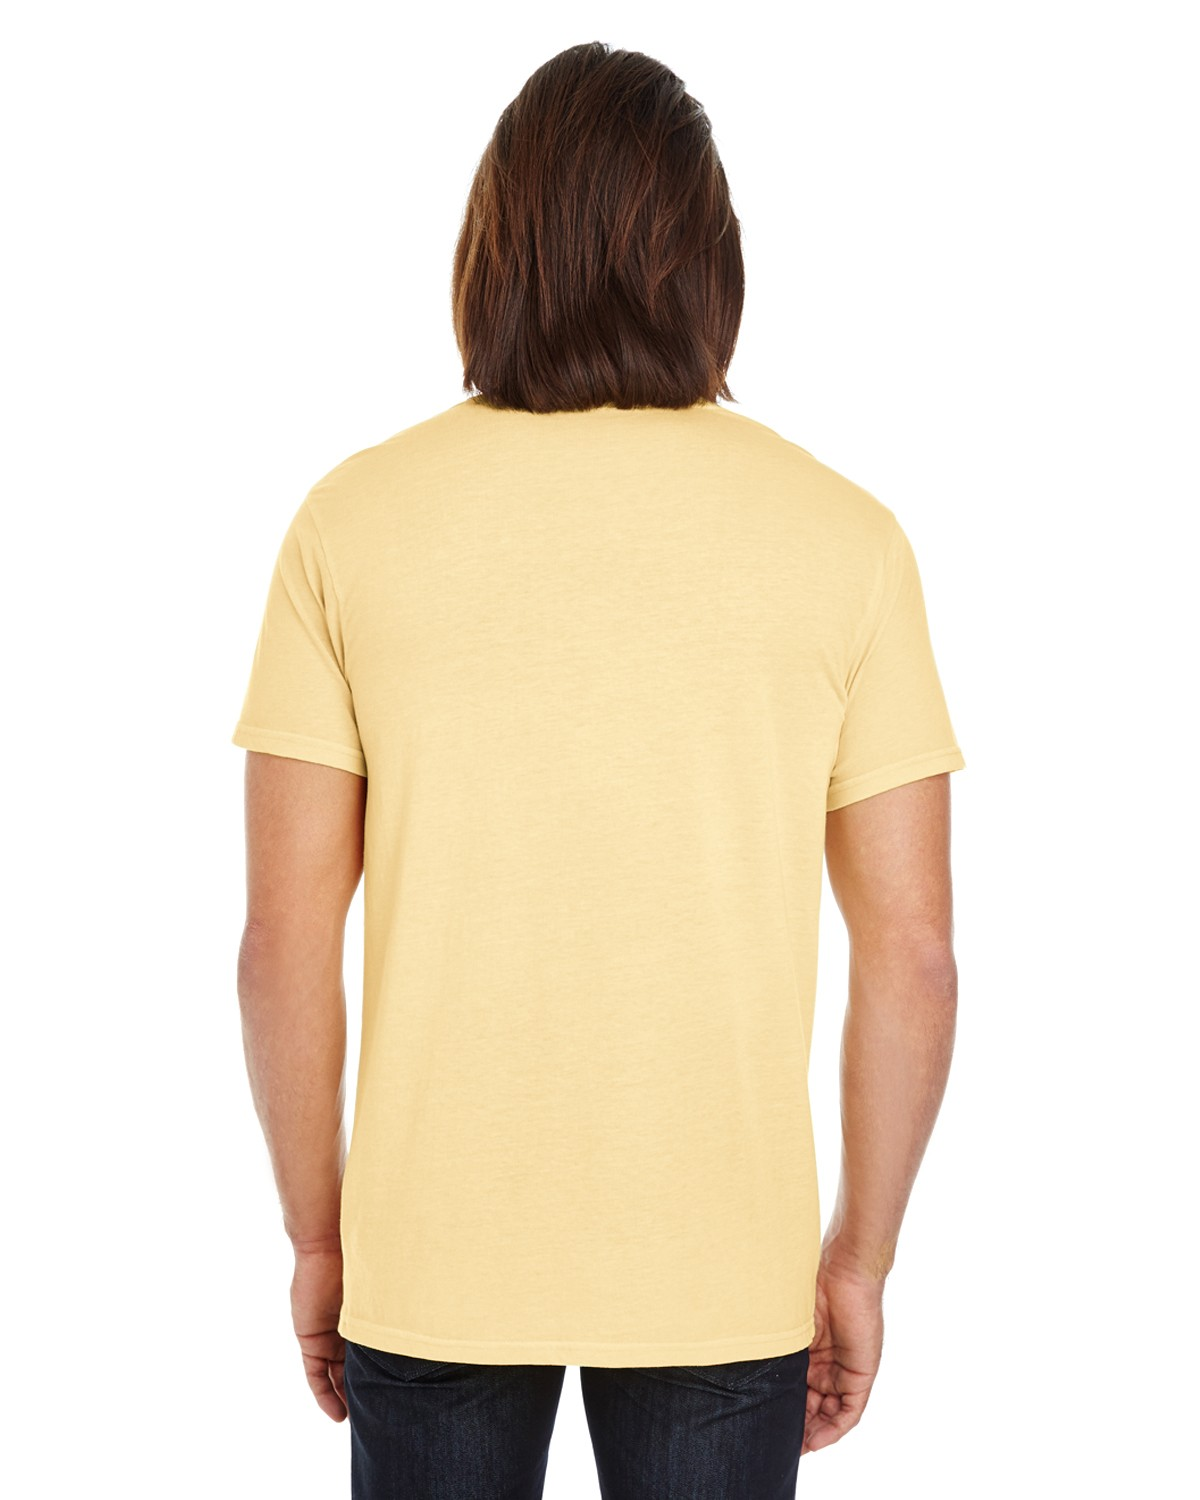 130A Threadfast Apparel BUTTER